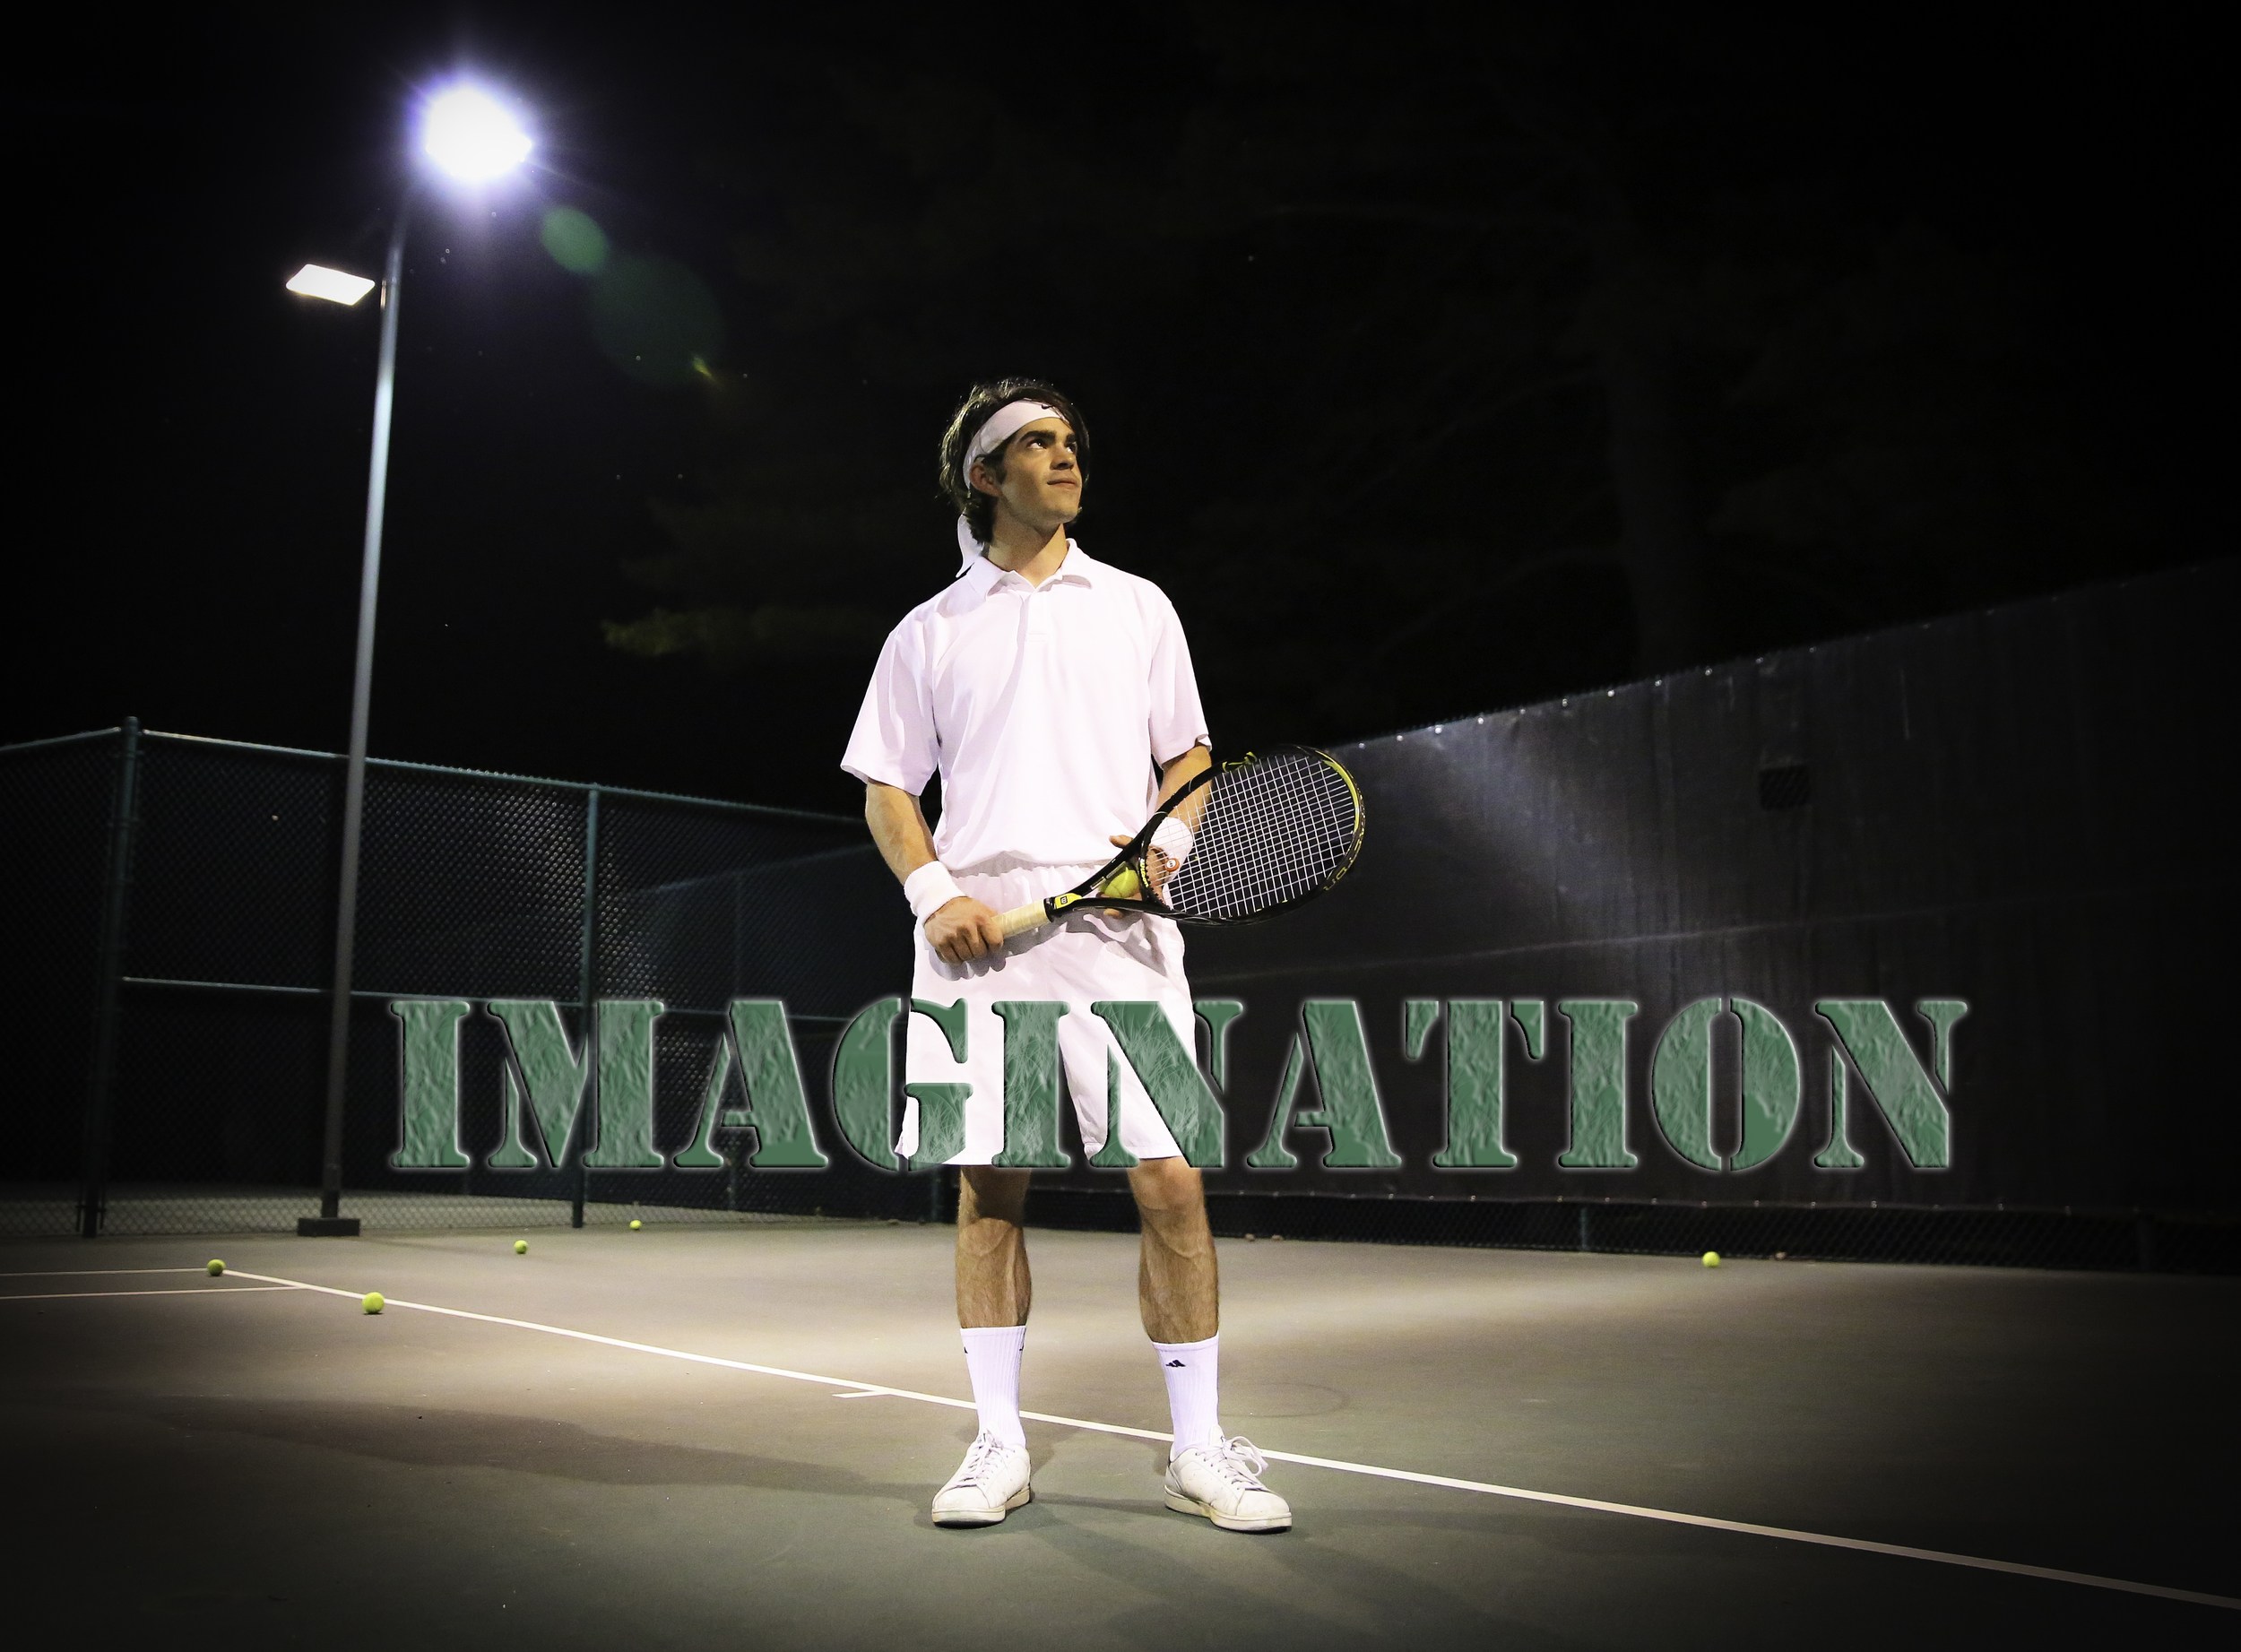 The sport of tennis can be very frustrating to play alone, but it's very fun when you have an enthusiastic instructor.